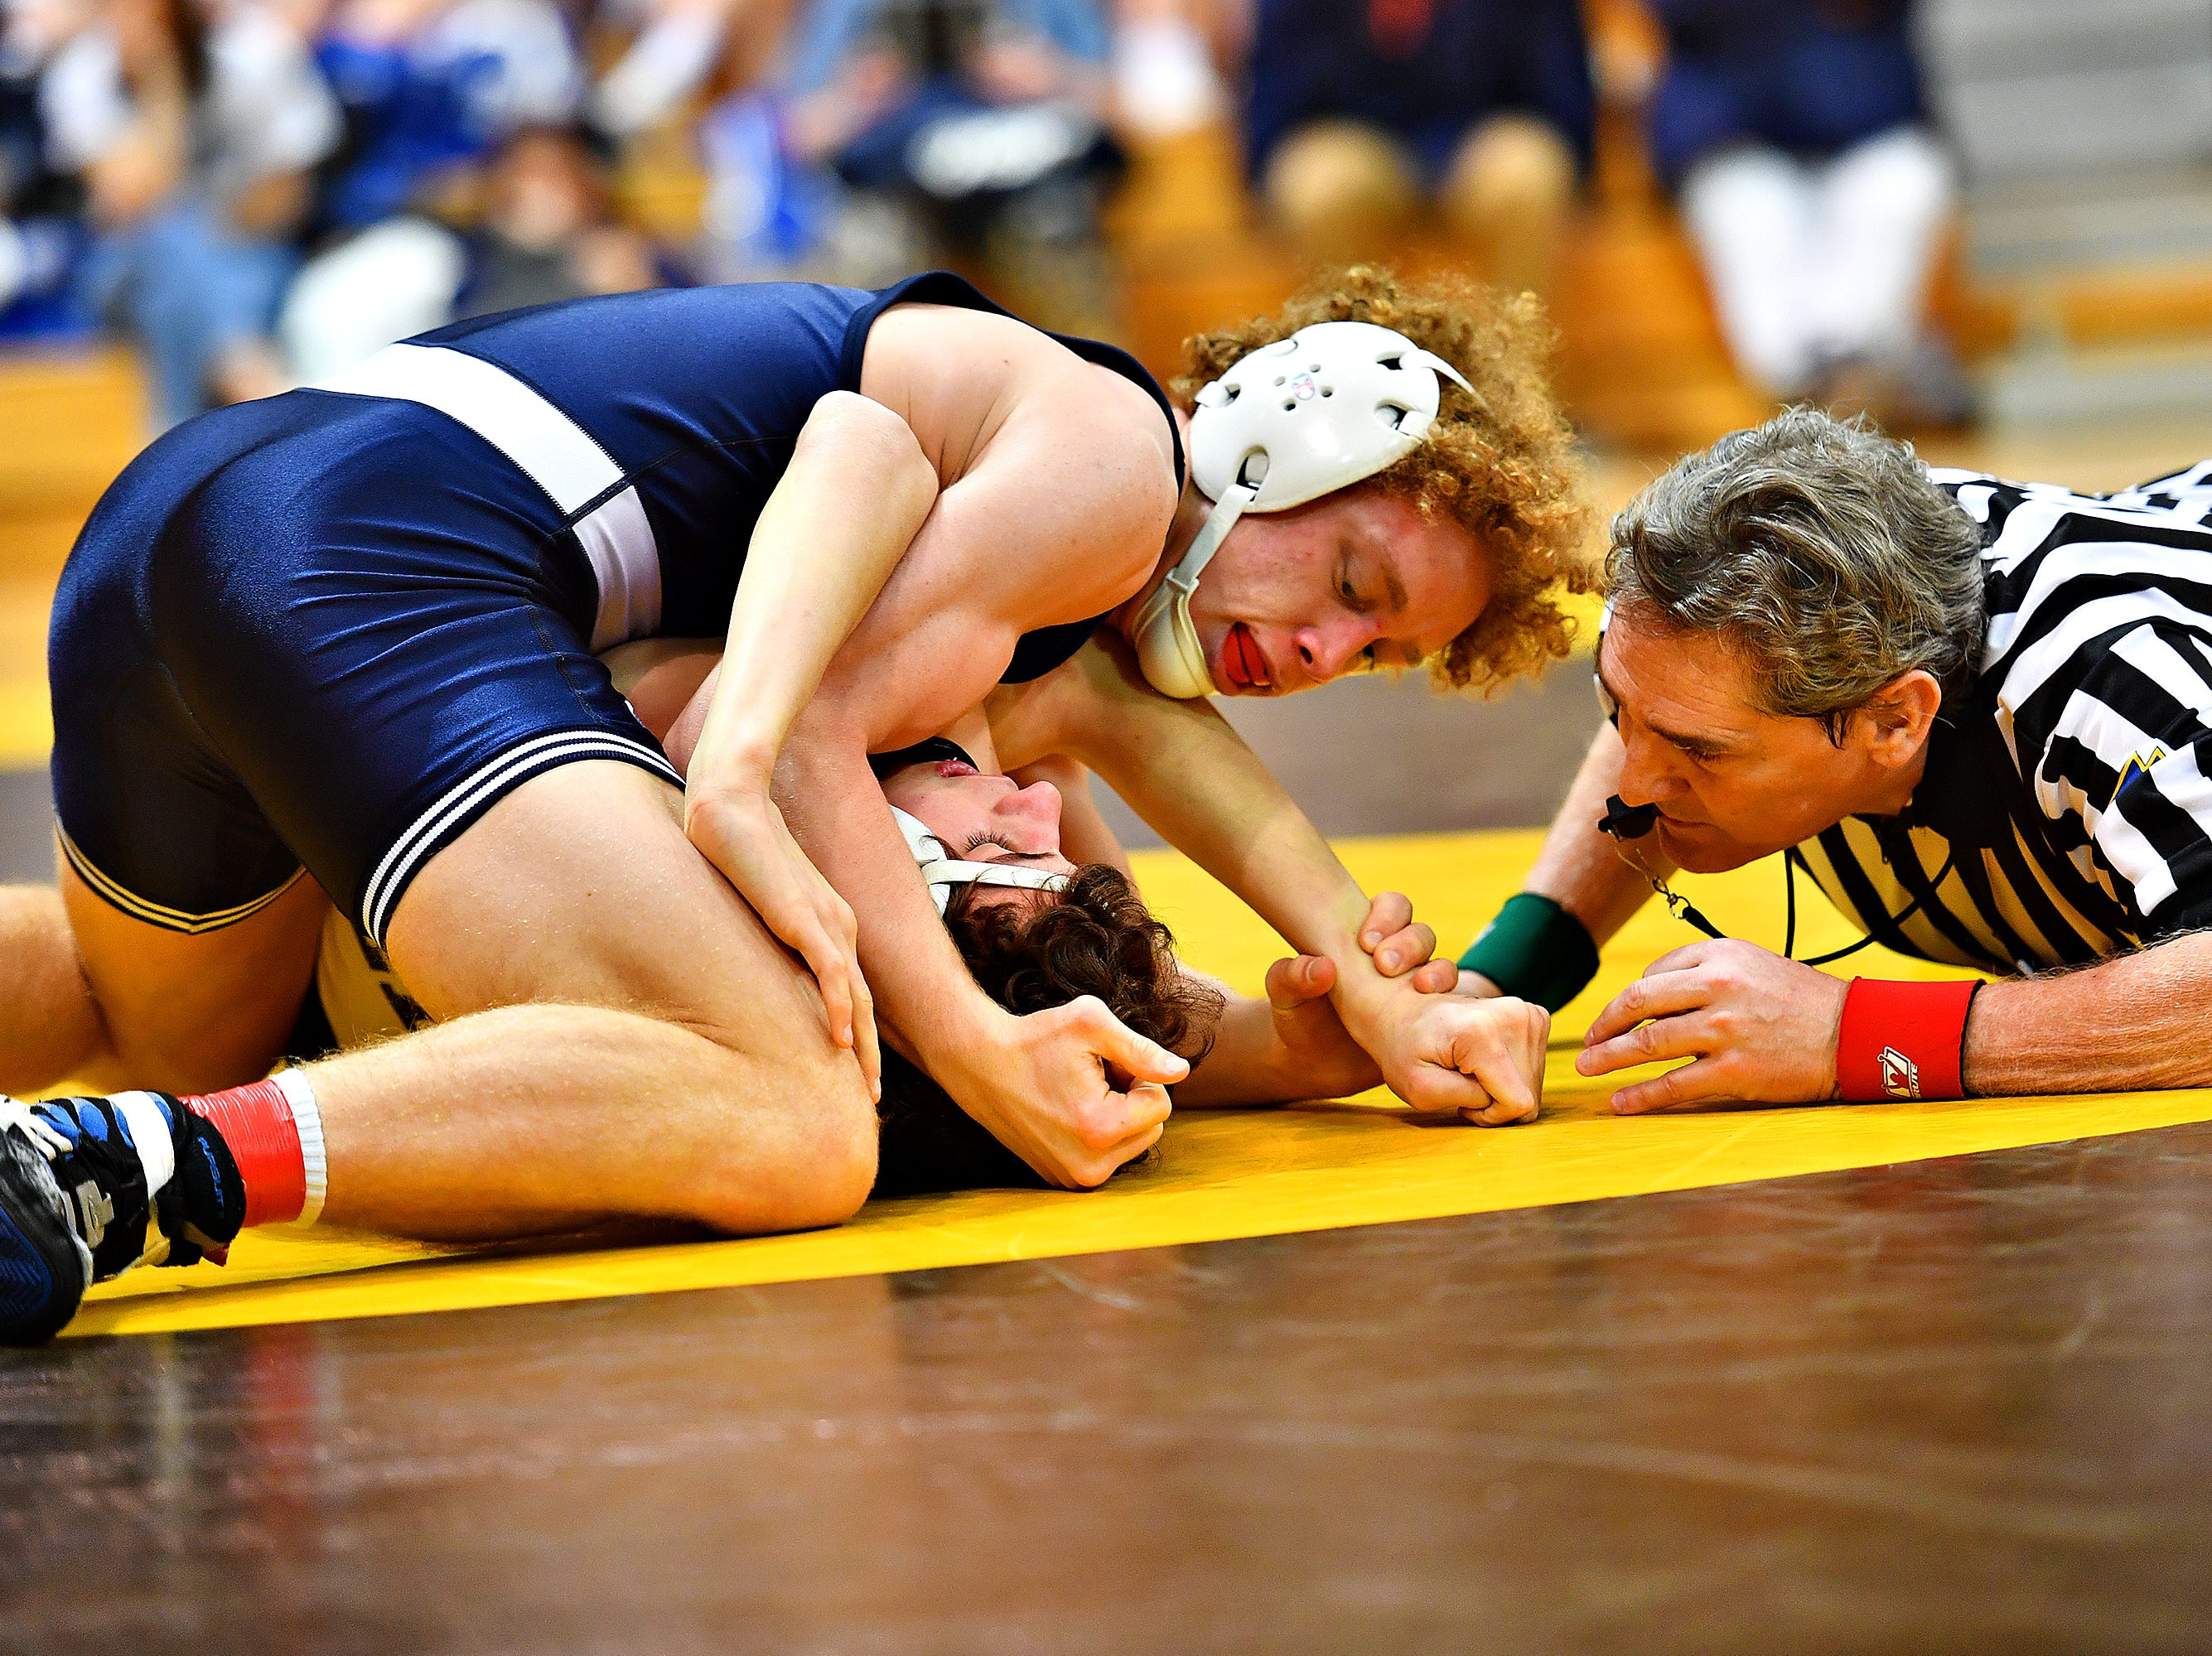 Dallastown's Cael Turnbull, left, wrestles Cedar Cliff's Mike Cassidy in the 132 pound weight class during District 3, Class 3A wrestling championship action at Milton Hershey High School in Hershey, Saturday, Feb. 2, 2019. Dawn J. Sagert photo